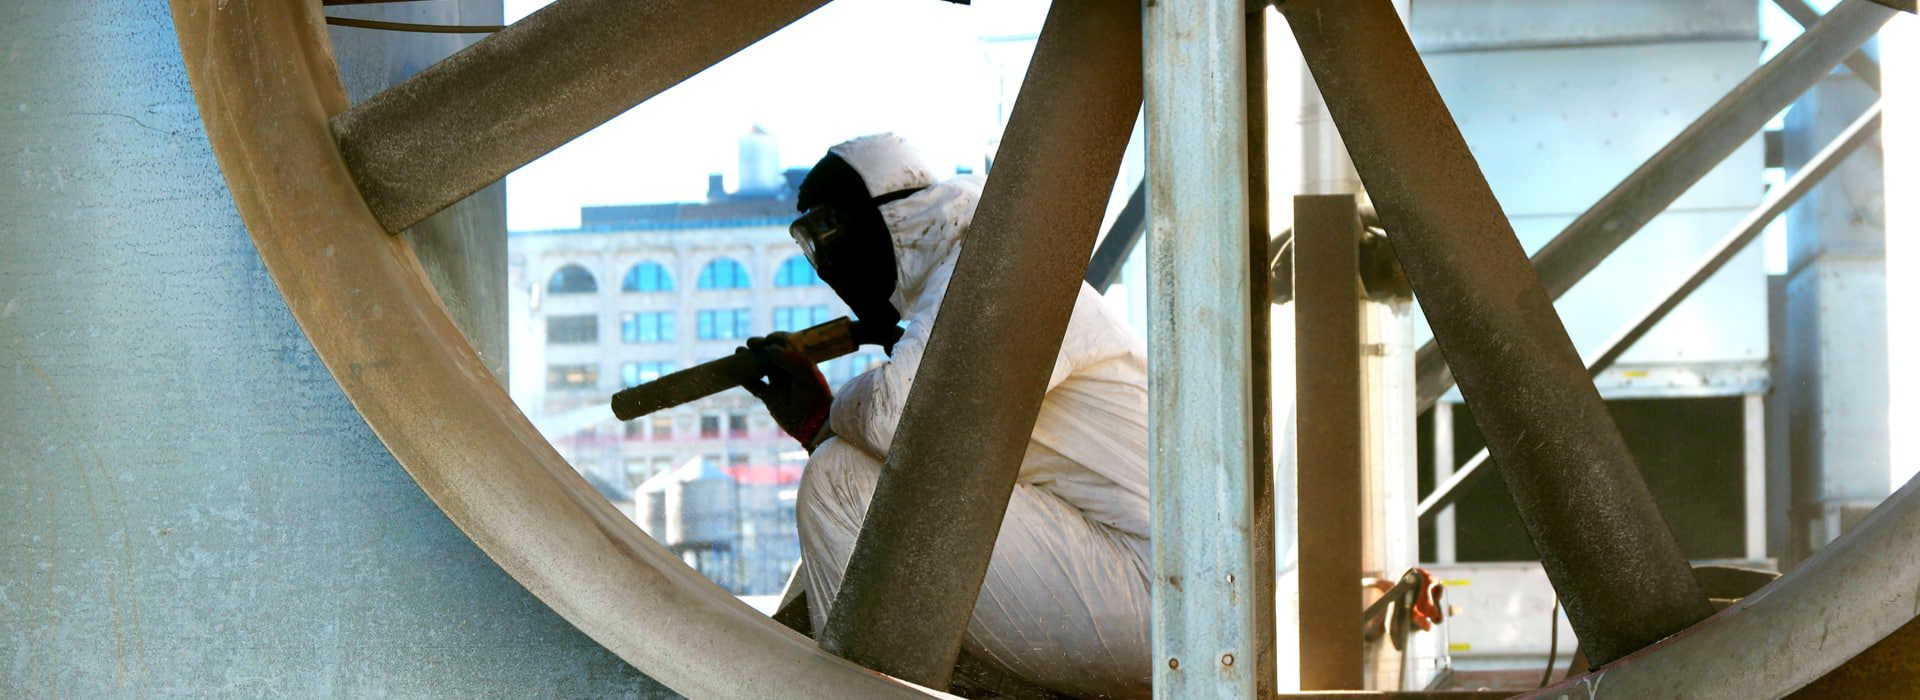 Abrasive Blasting Cleaning Services